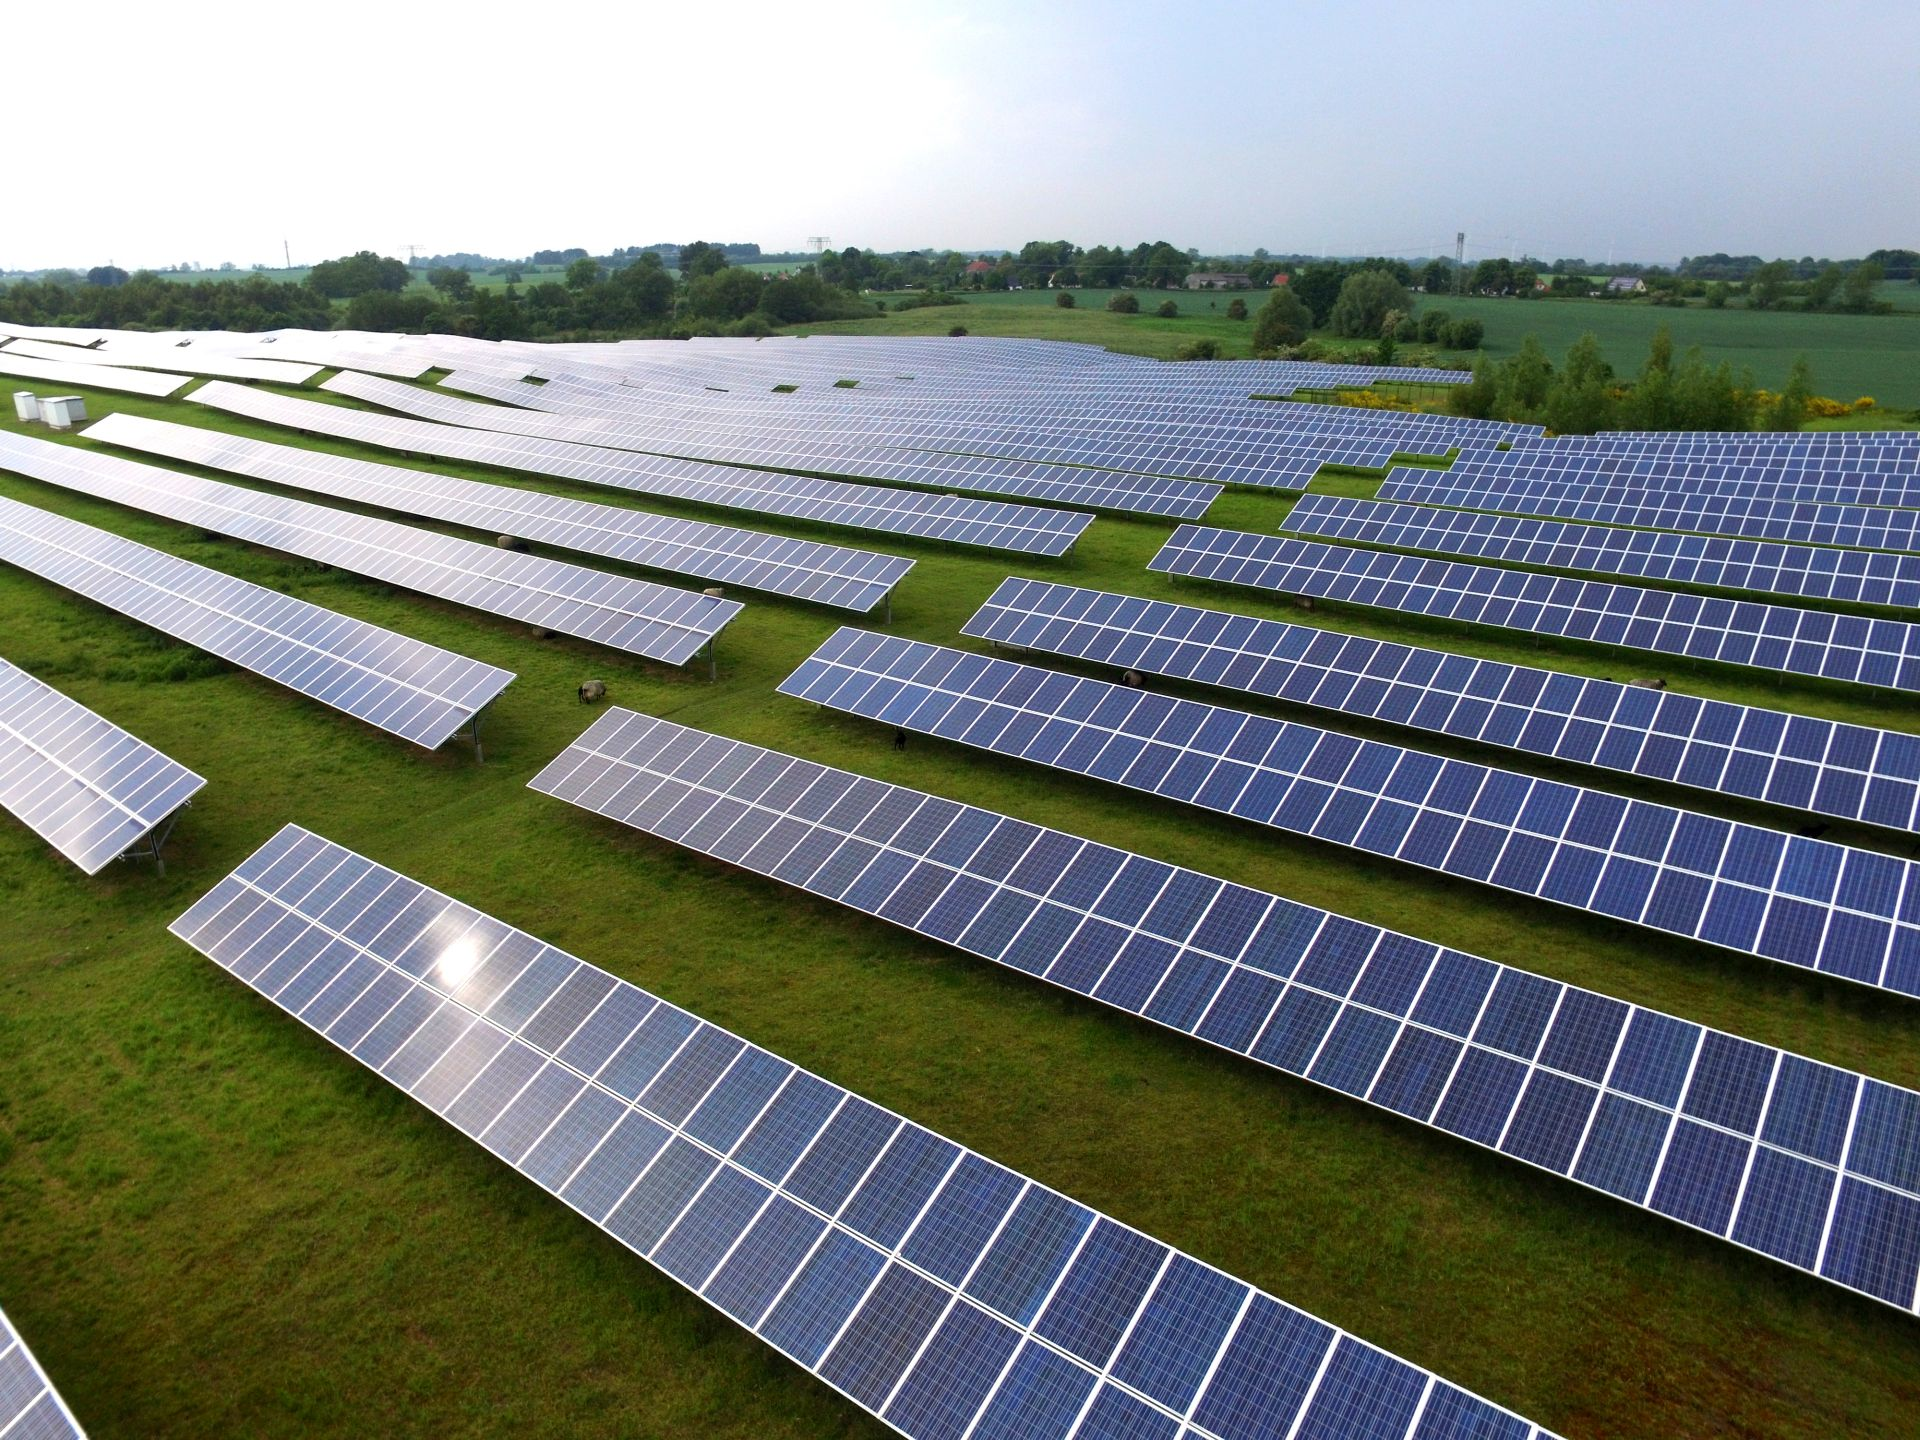 Photovoltaic modules with increased performance